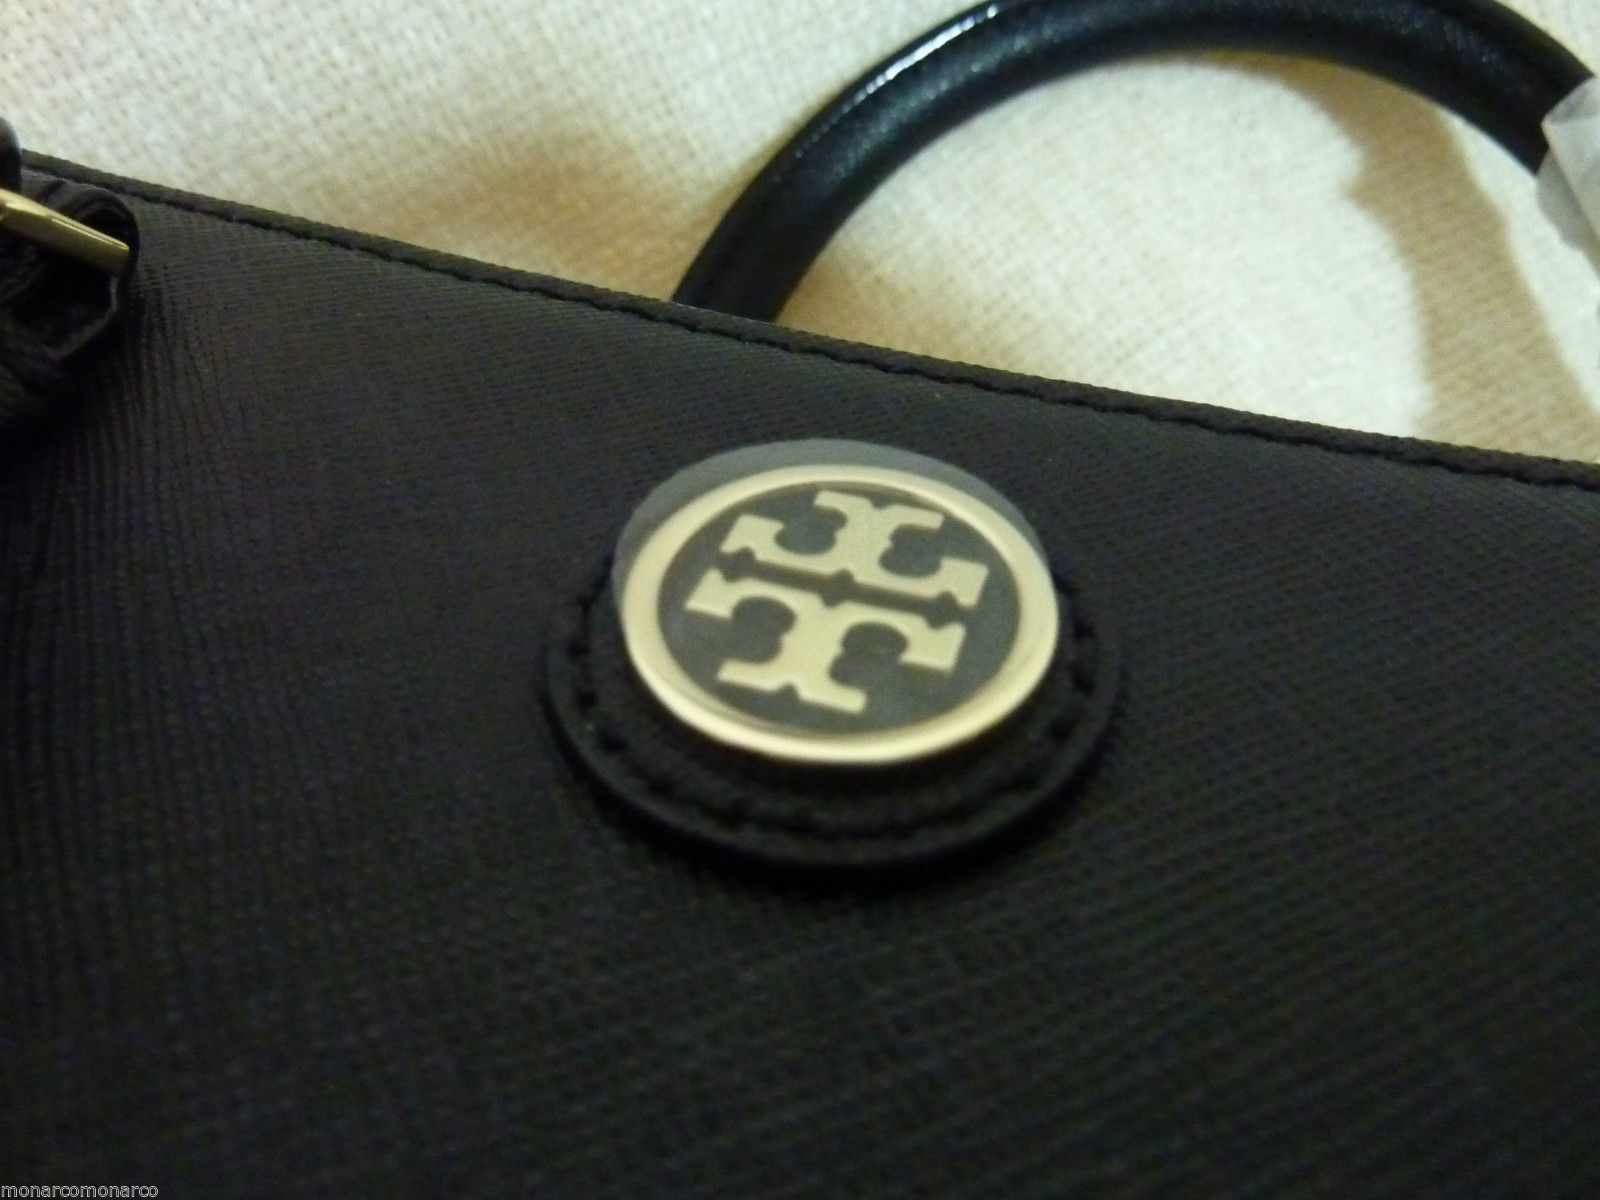 NWT Tory Burch Black Saffiano Leather Large Robinson Multi Tote - $595 image 12